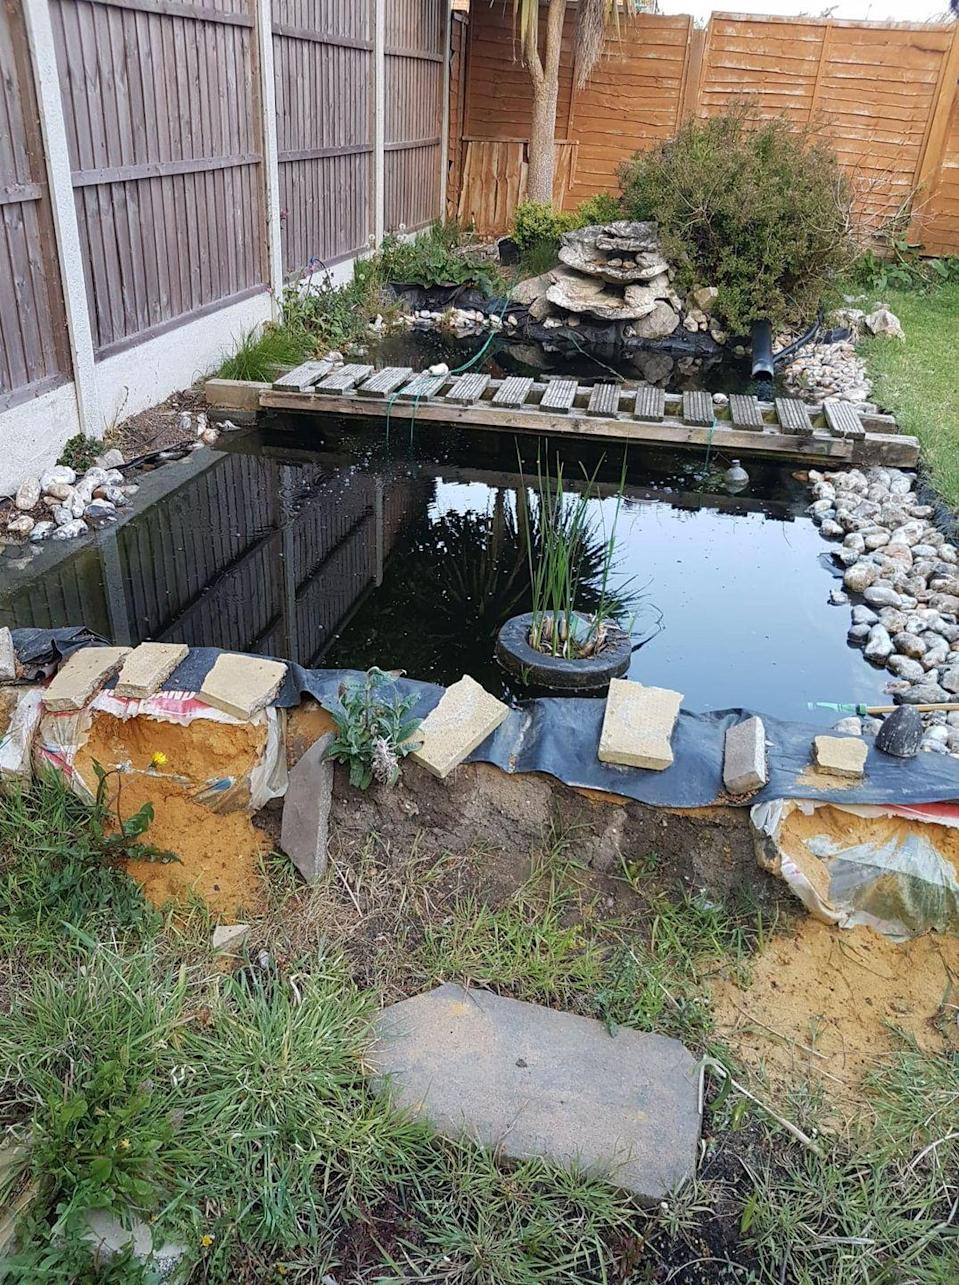 """<p>Ornamental garden ponds are highly sought after, but this failed attempt from Lena Hartl is more like a pool of water outside. Calling the project a 'total failure', it took Lena over two years to design. </p><p><strong>READ MORE</strong>: <a href=""""https://www.housebeautiful.com/uk/garden/designs/a36461898/healing-garden/"""" rel=""""nofollow noopener"""" target=""""_blank"""" data-ylk=""""slk:How to create your own healing garden"""" class=""""link rapid-noclick-resp"""">How to create your own healing garden</a> </p>"""